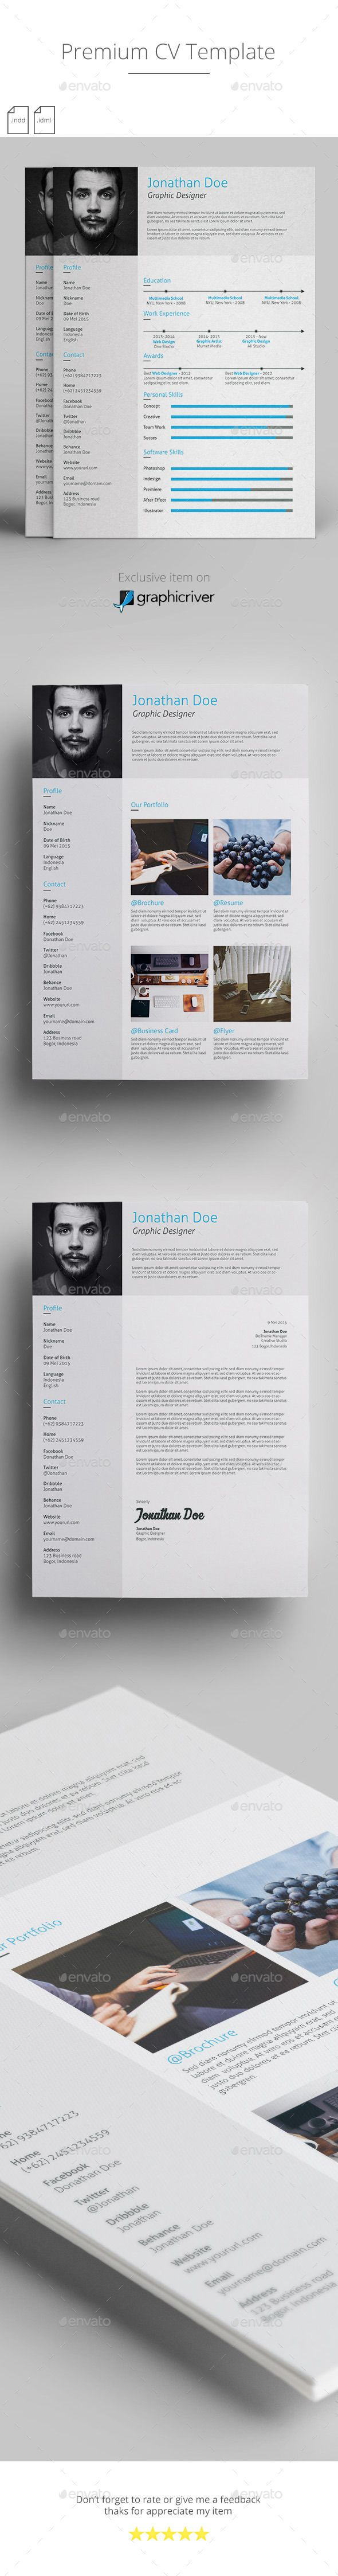 Cv Templates Design%0A Premium CV Template  design Download  http   graphicriver net item